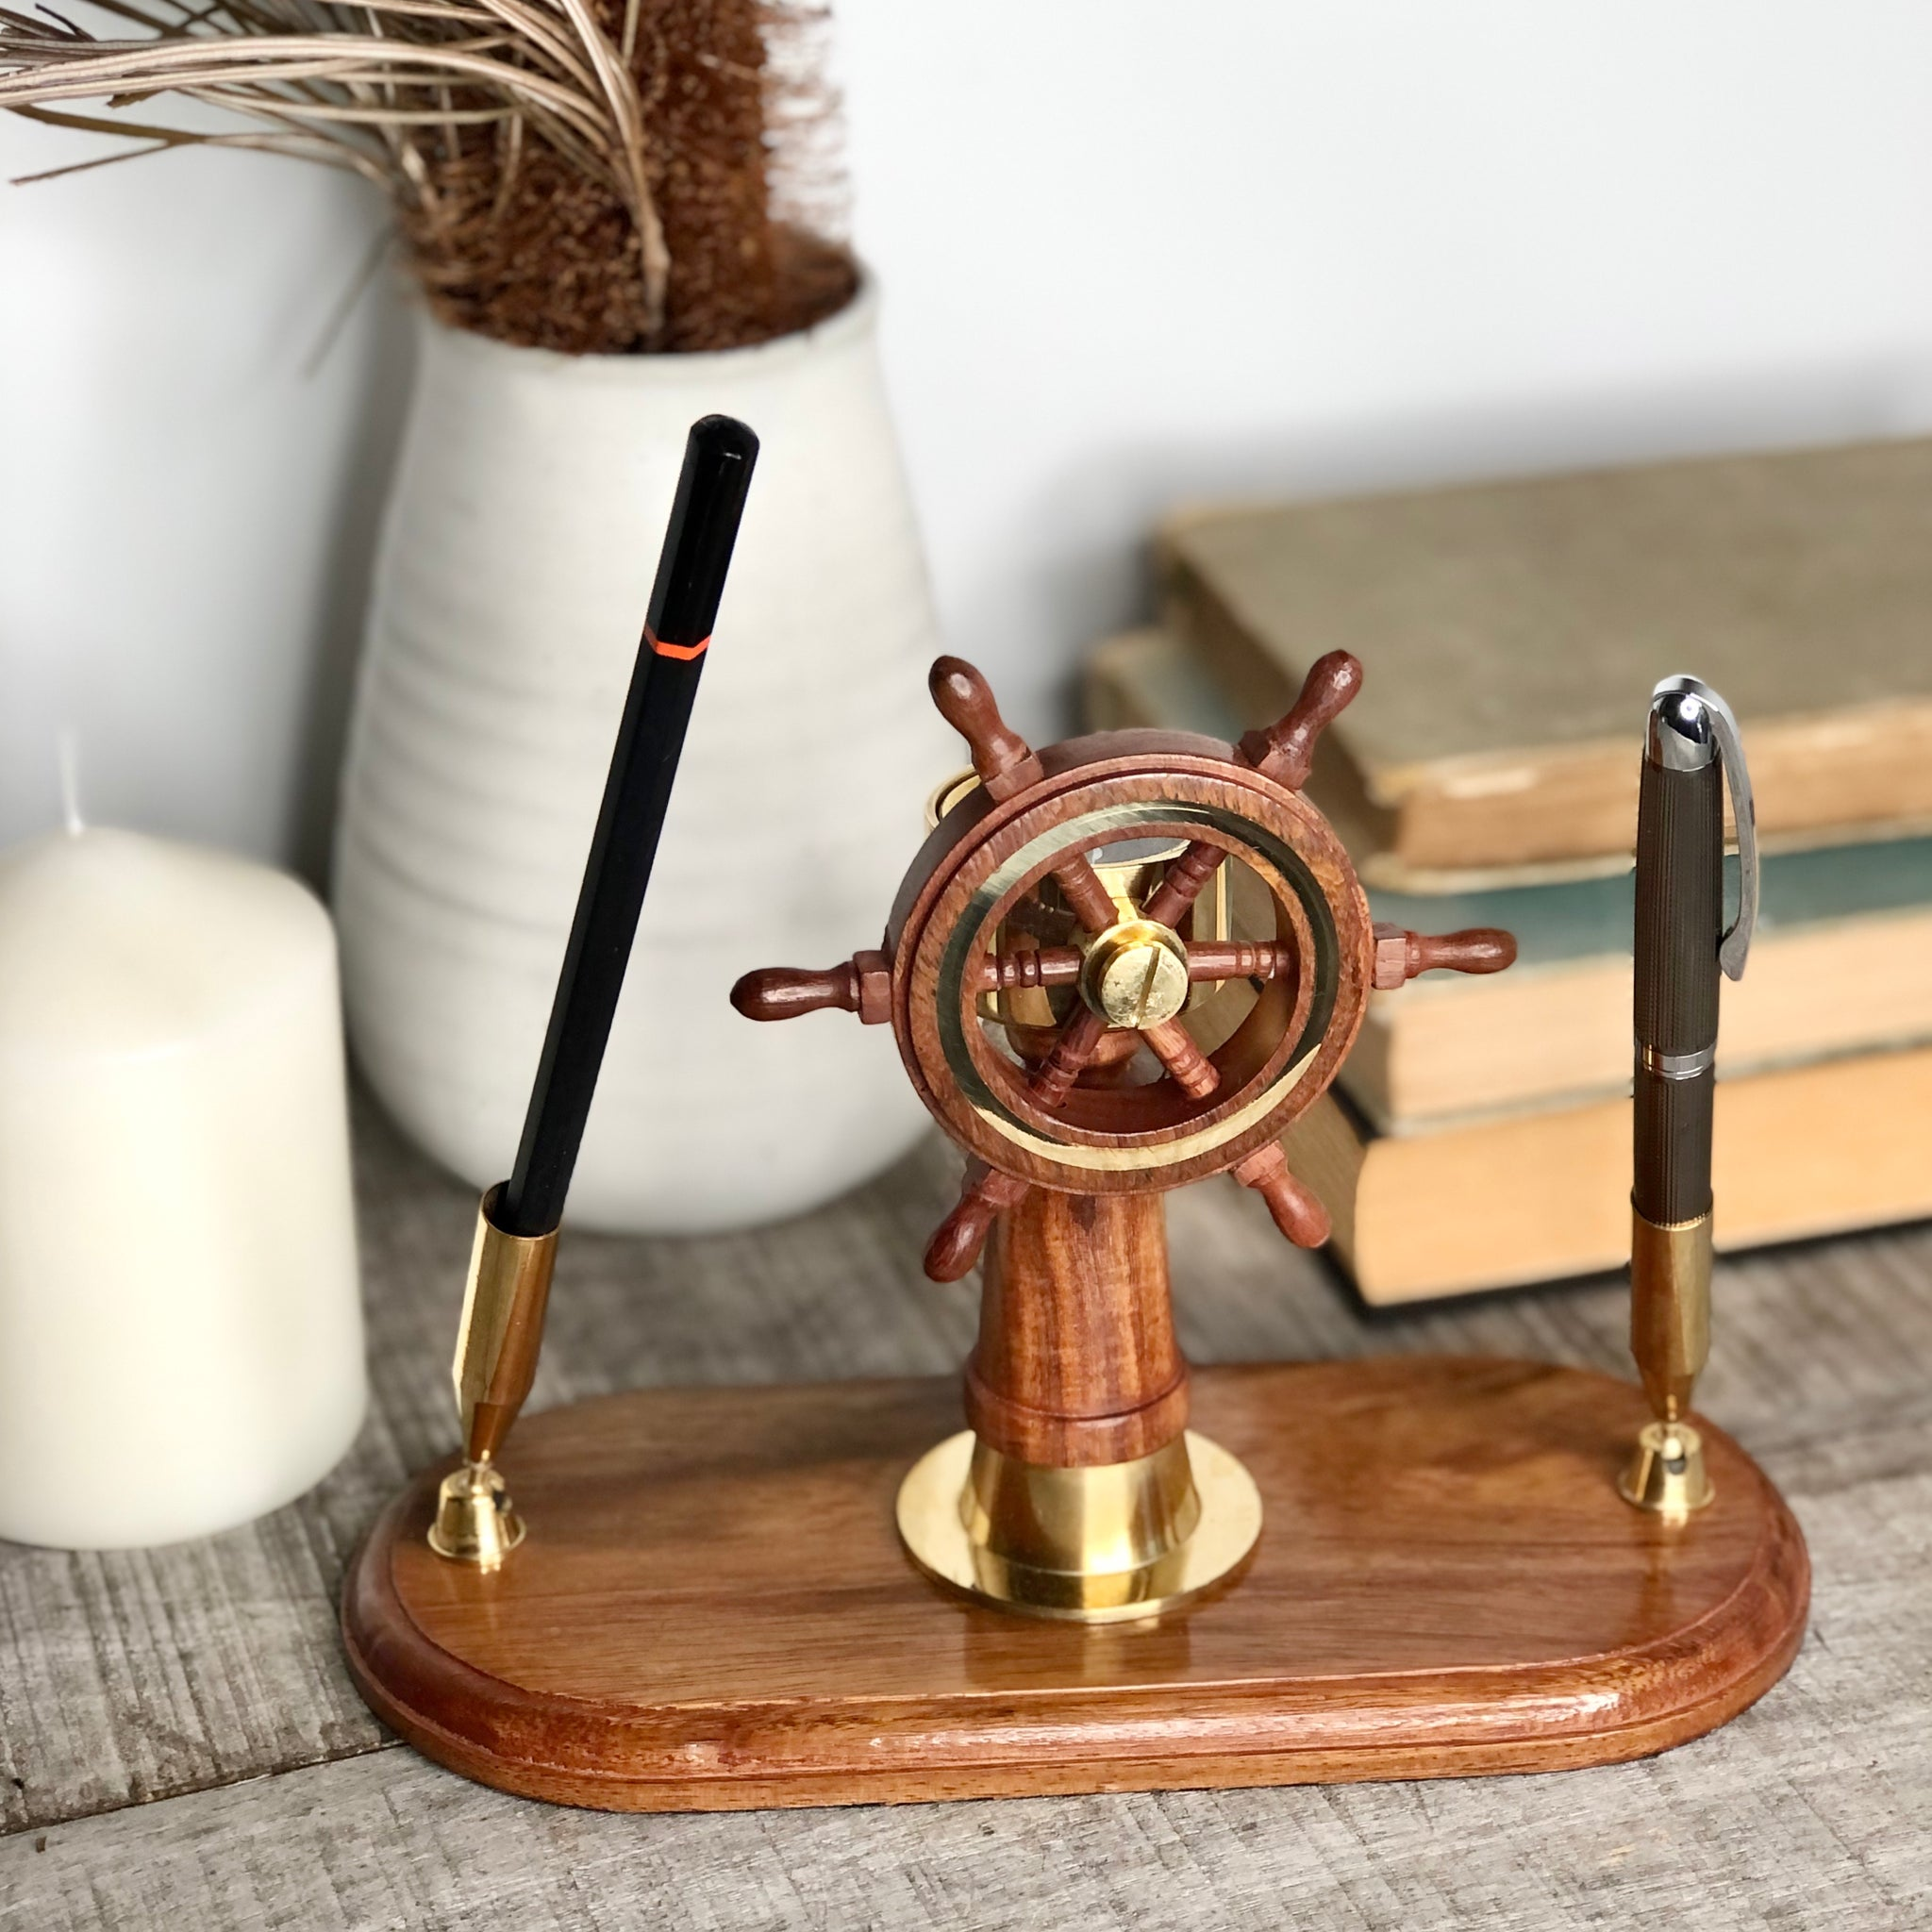 Gift, decor and crystal shop Australia: Sailing ship wheel + compass wooden desk pen holder